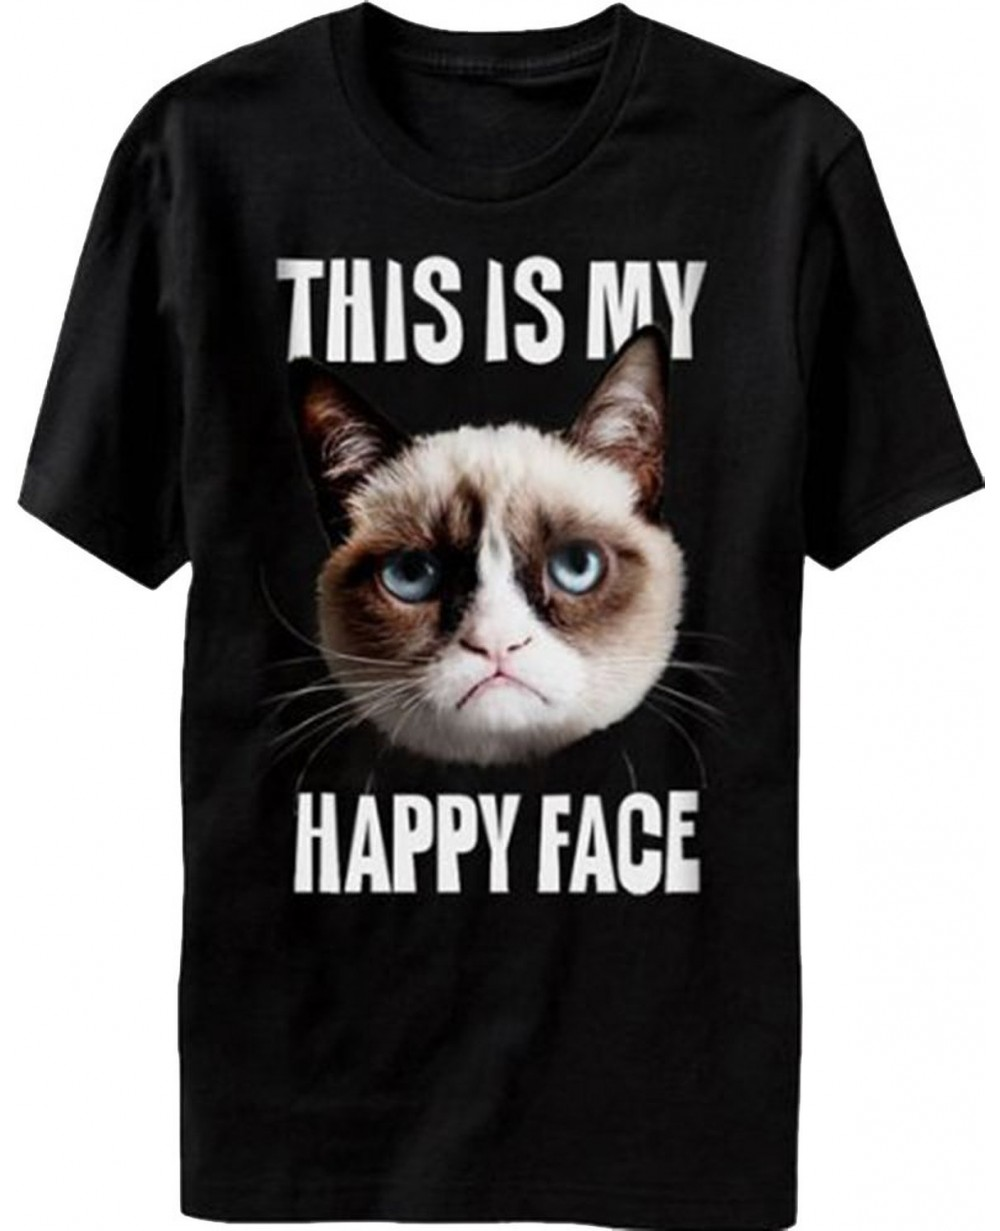 This Is My Happy Face Grumpy Cat T Shirt